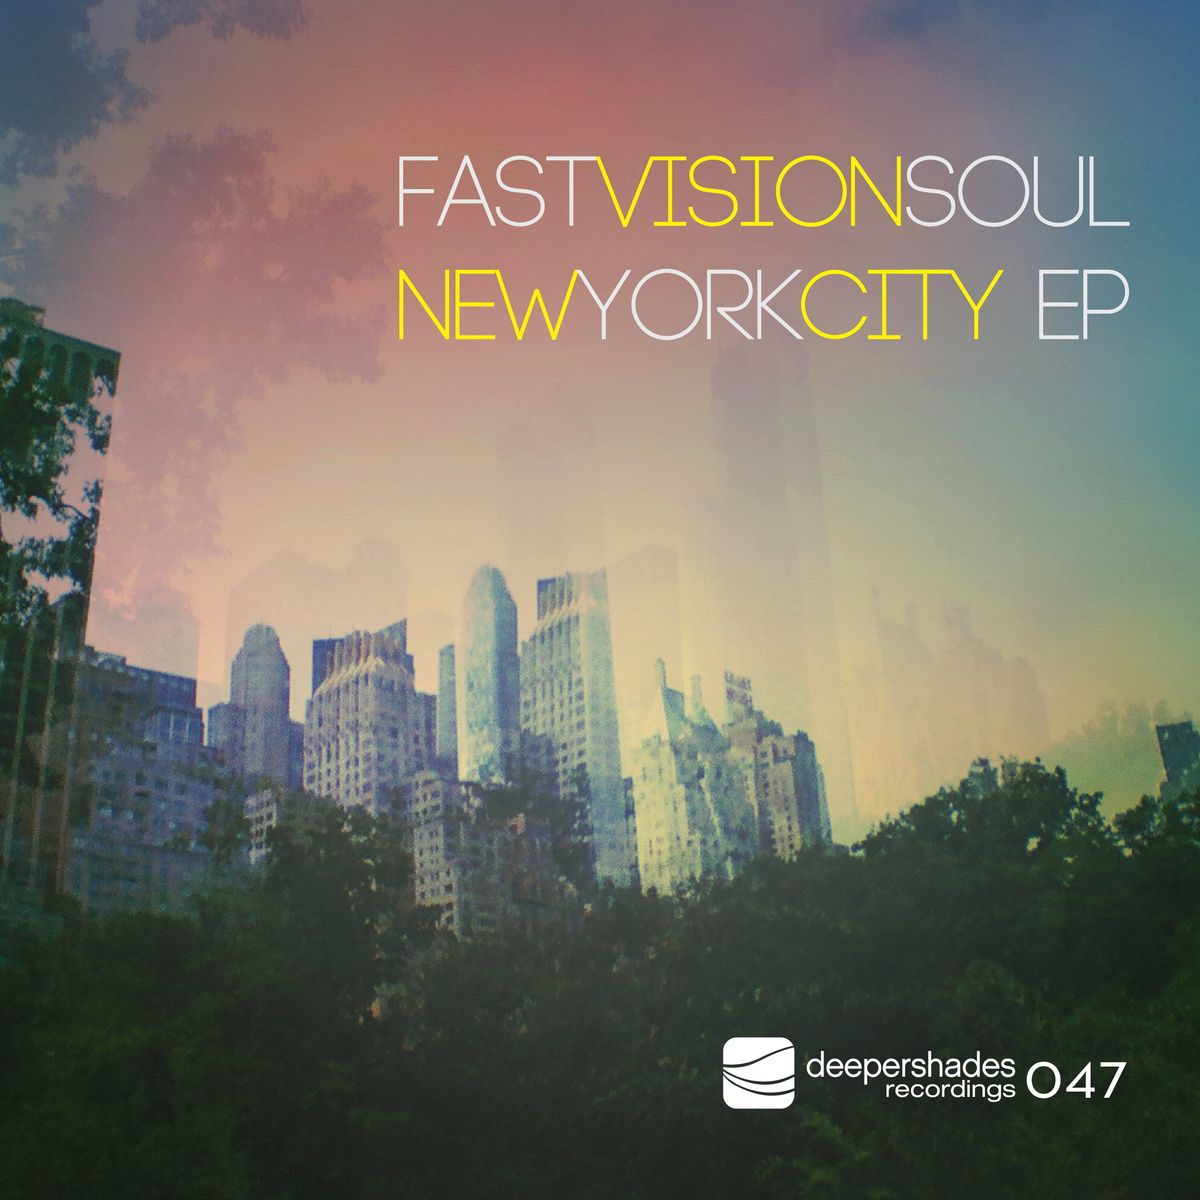 New York City EP in the Deeper Shades Bandcamp store!